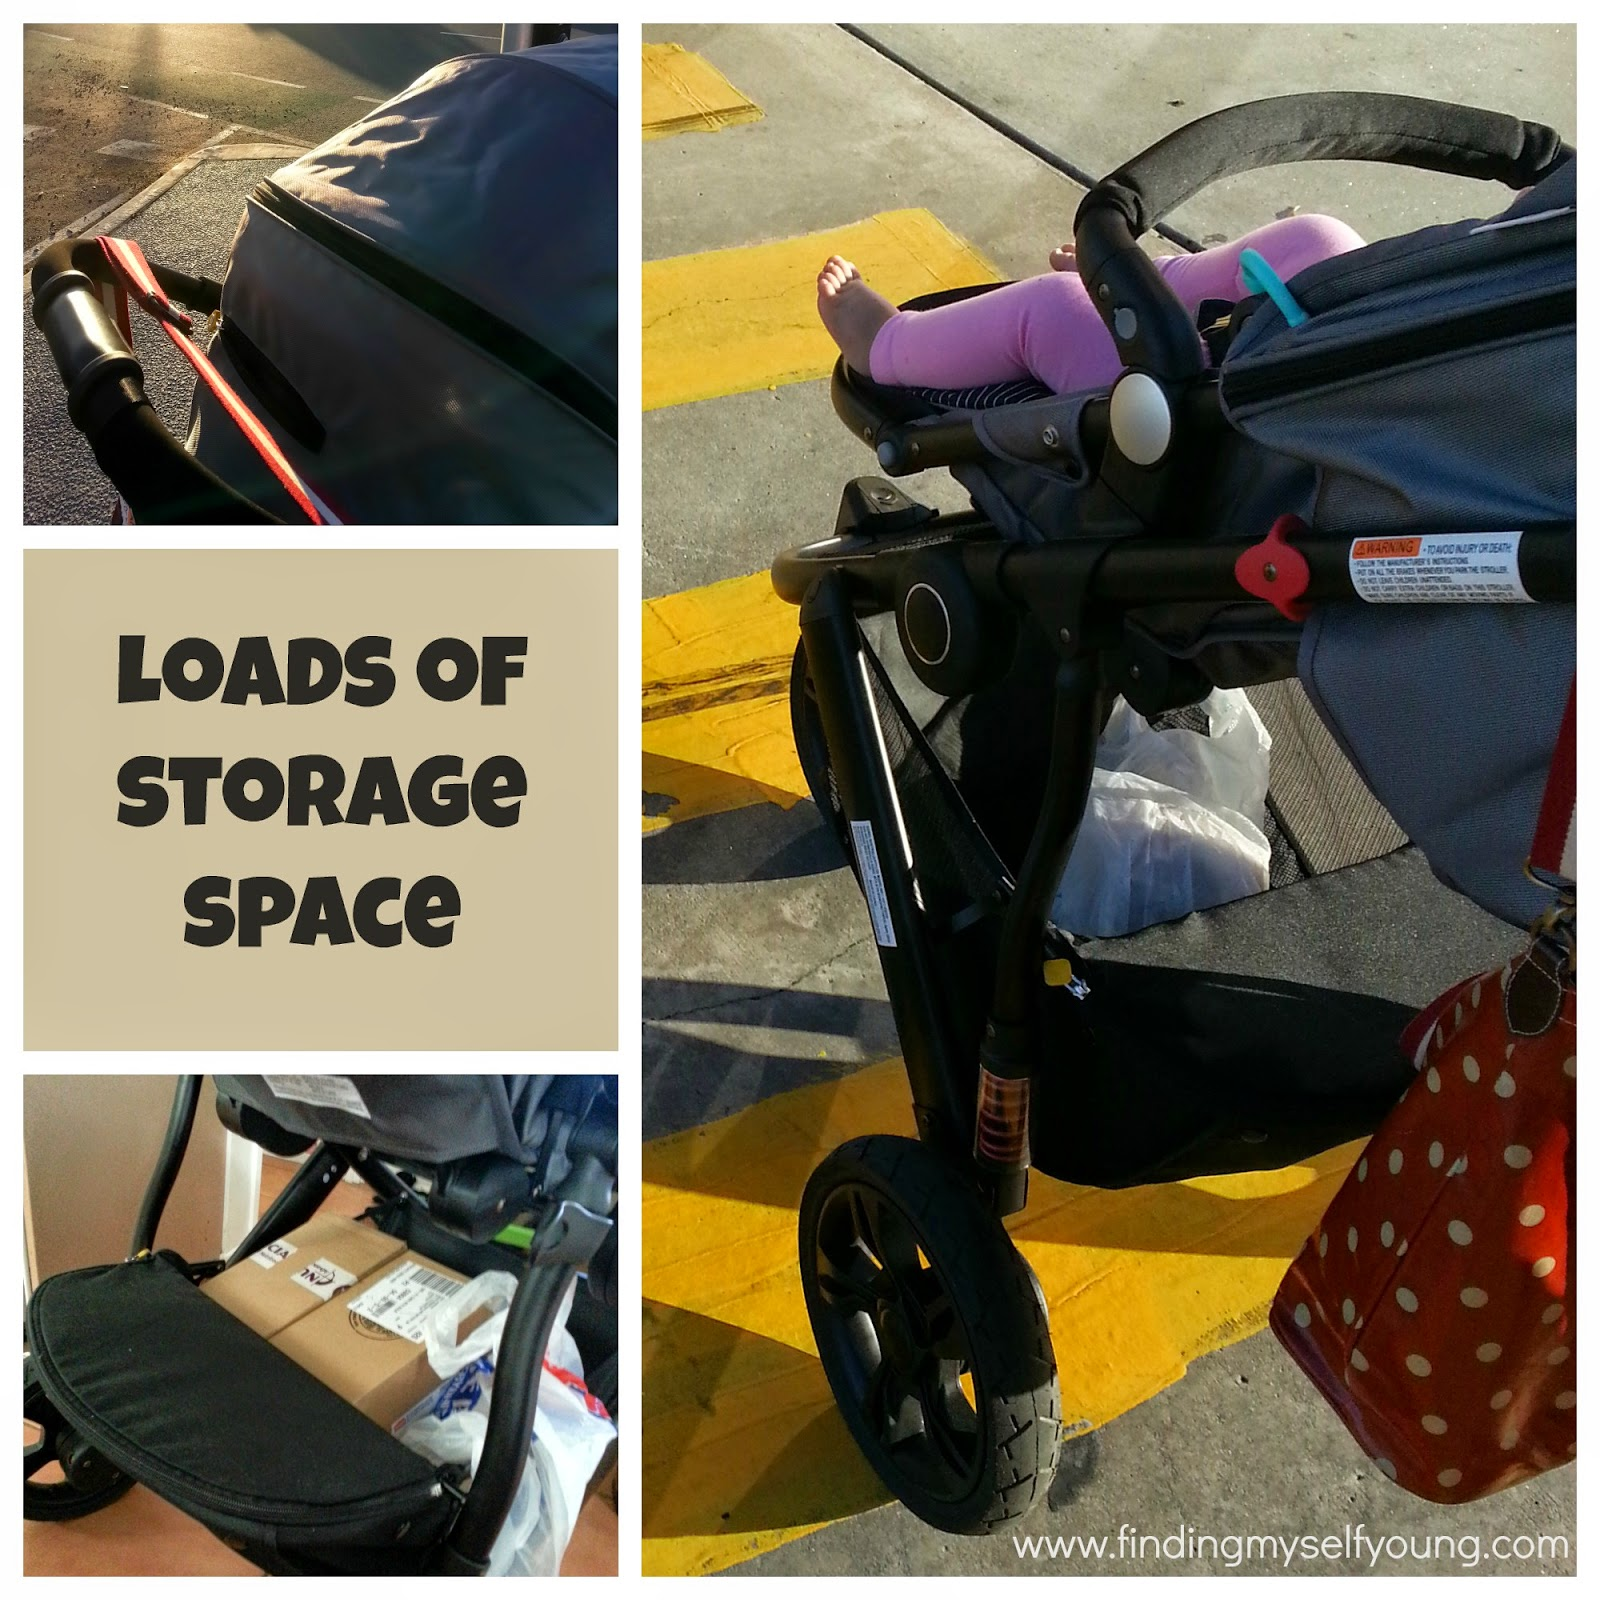 Safety 1st Wanderer pram storage space